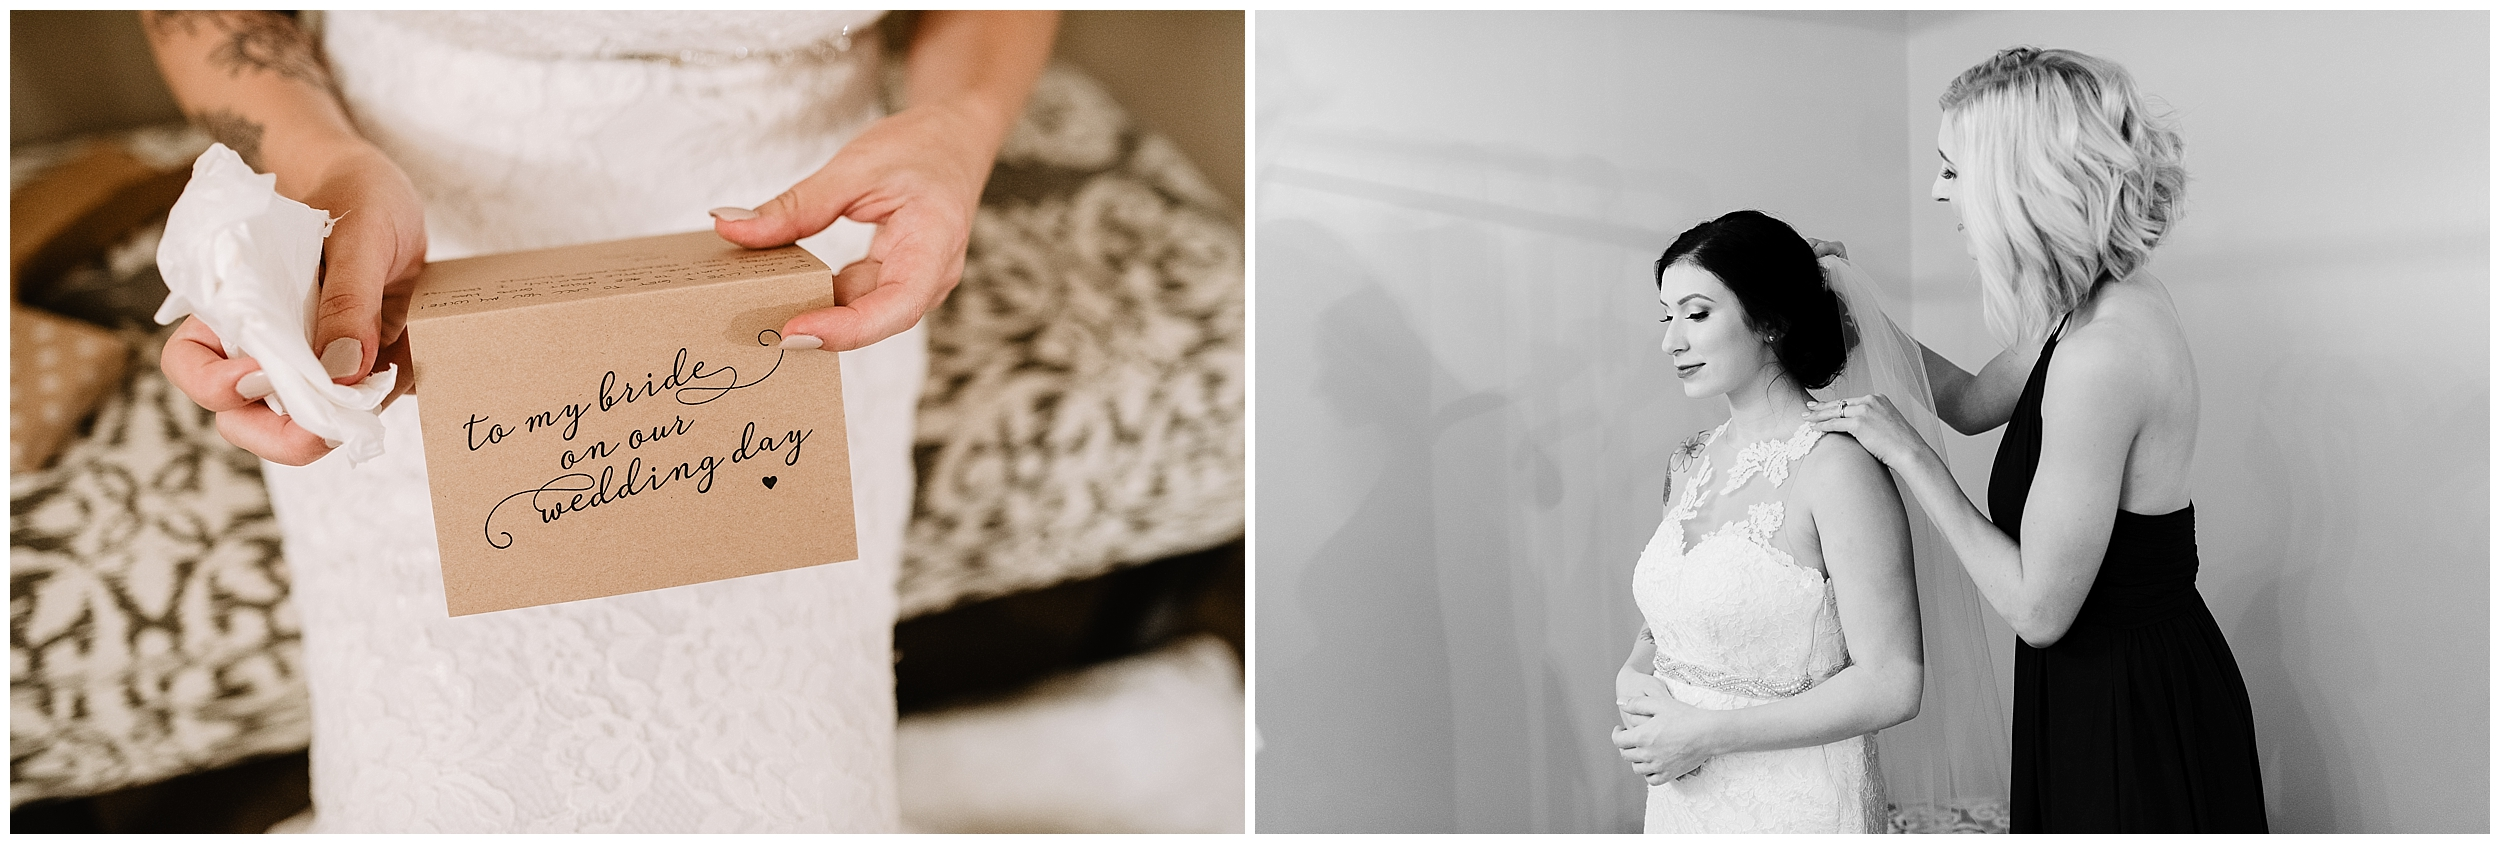 bridal gown bridal dress wedding dress portrait details lace beading bridesmaid hair black and white black&white getting ready